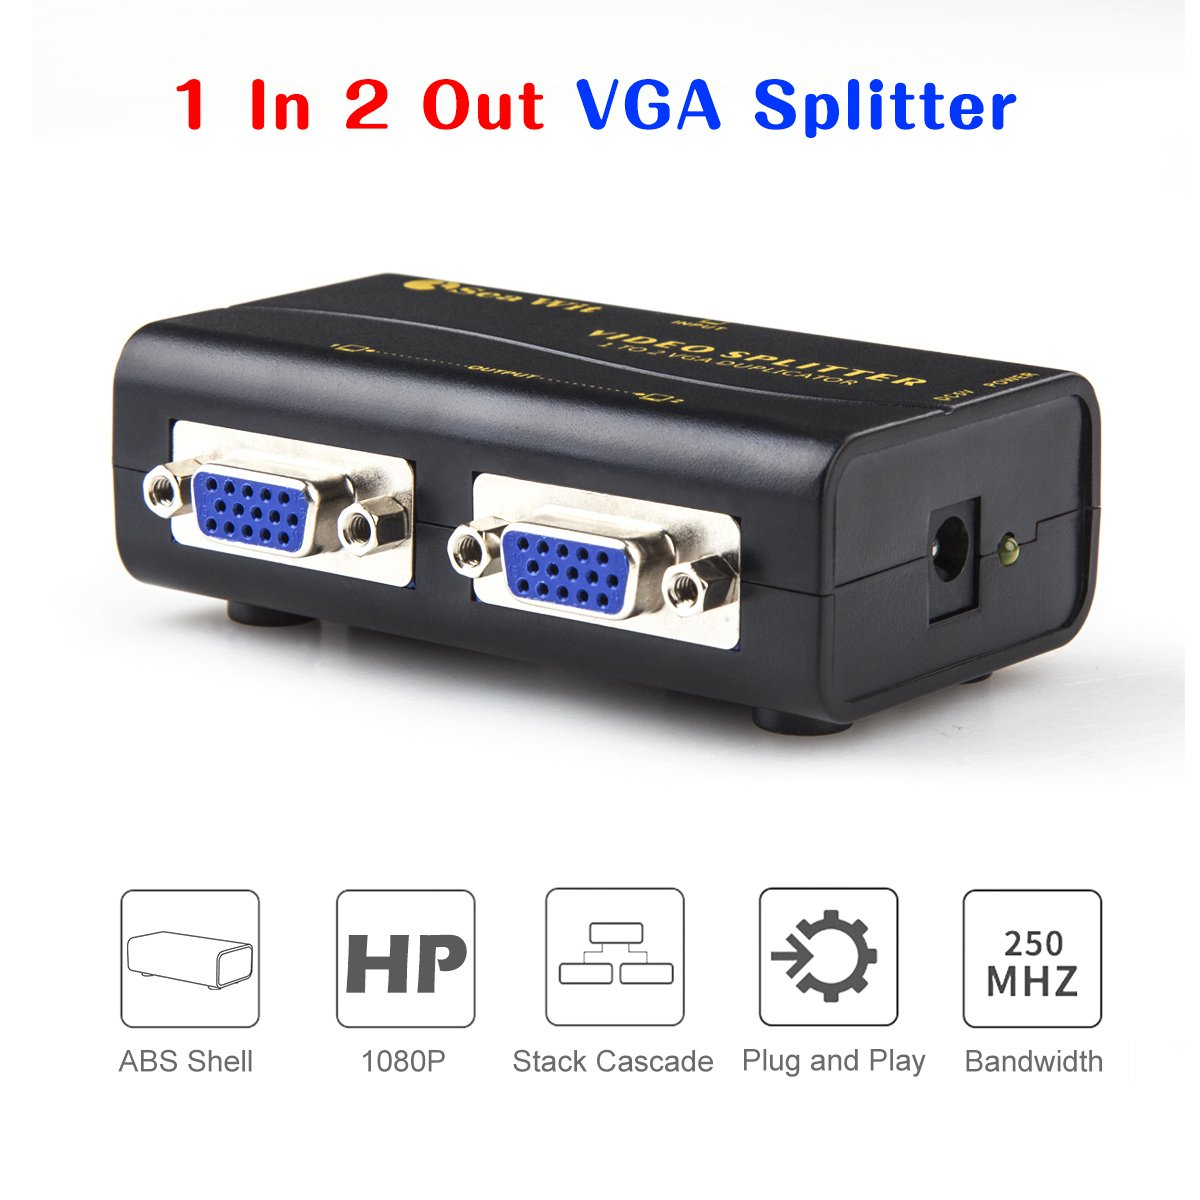 Sea Wit VGA Splitter, 2-Port VGA Monitor Splitter for Screen Duplication Supports 1920x1440 Resolution 250MHz Bandwidth -1 in 2 Out by Sea Wit (Image #4)